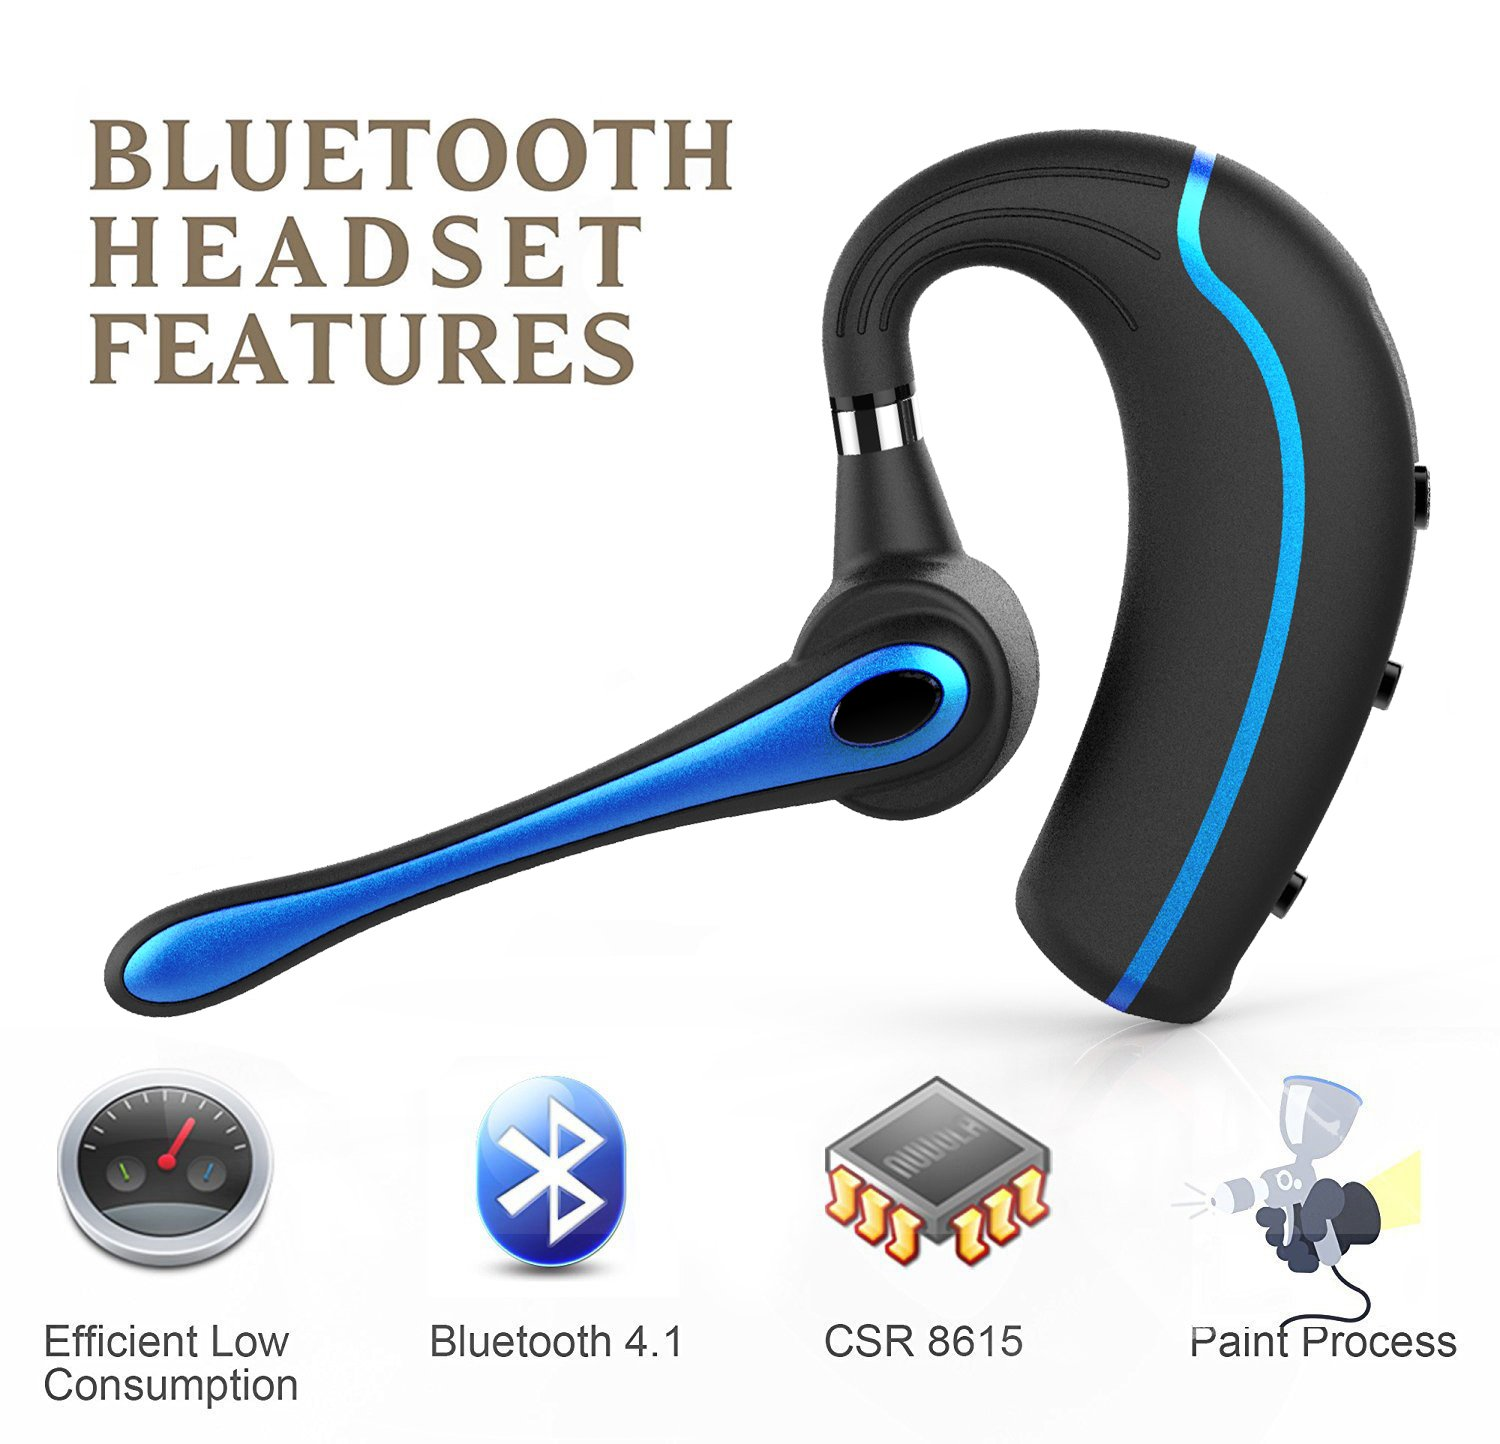 Walless Bluetooth Headset,Wireless Earpiece V4.1Hands Free Microphone for Business, Office,Driving,Work for iPhone/Samsung/Android Cell Phones (Black-B) by walless (Image #4)